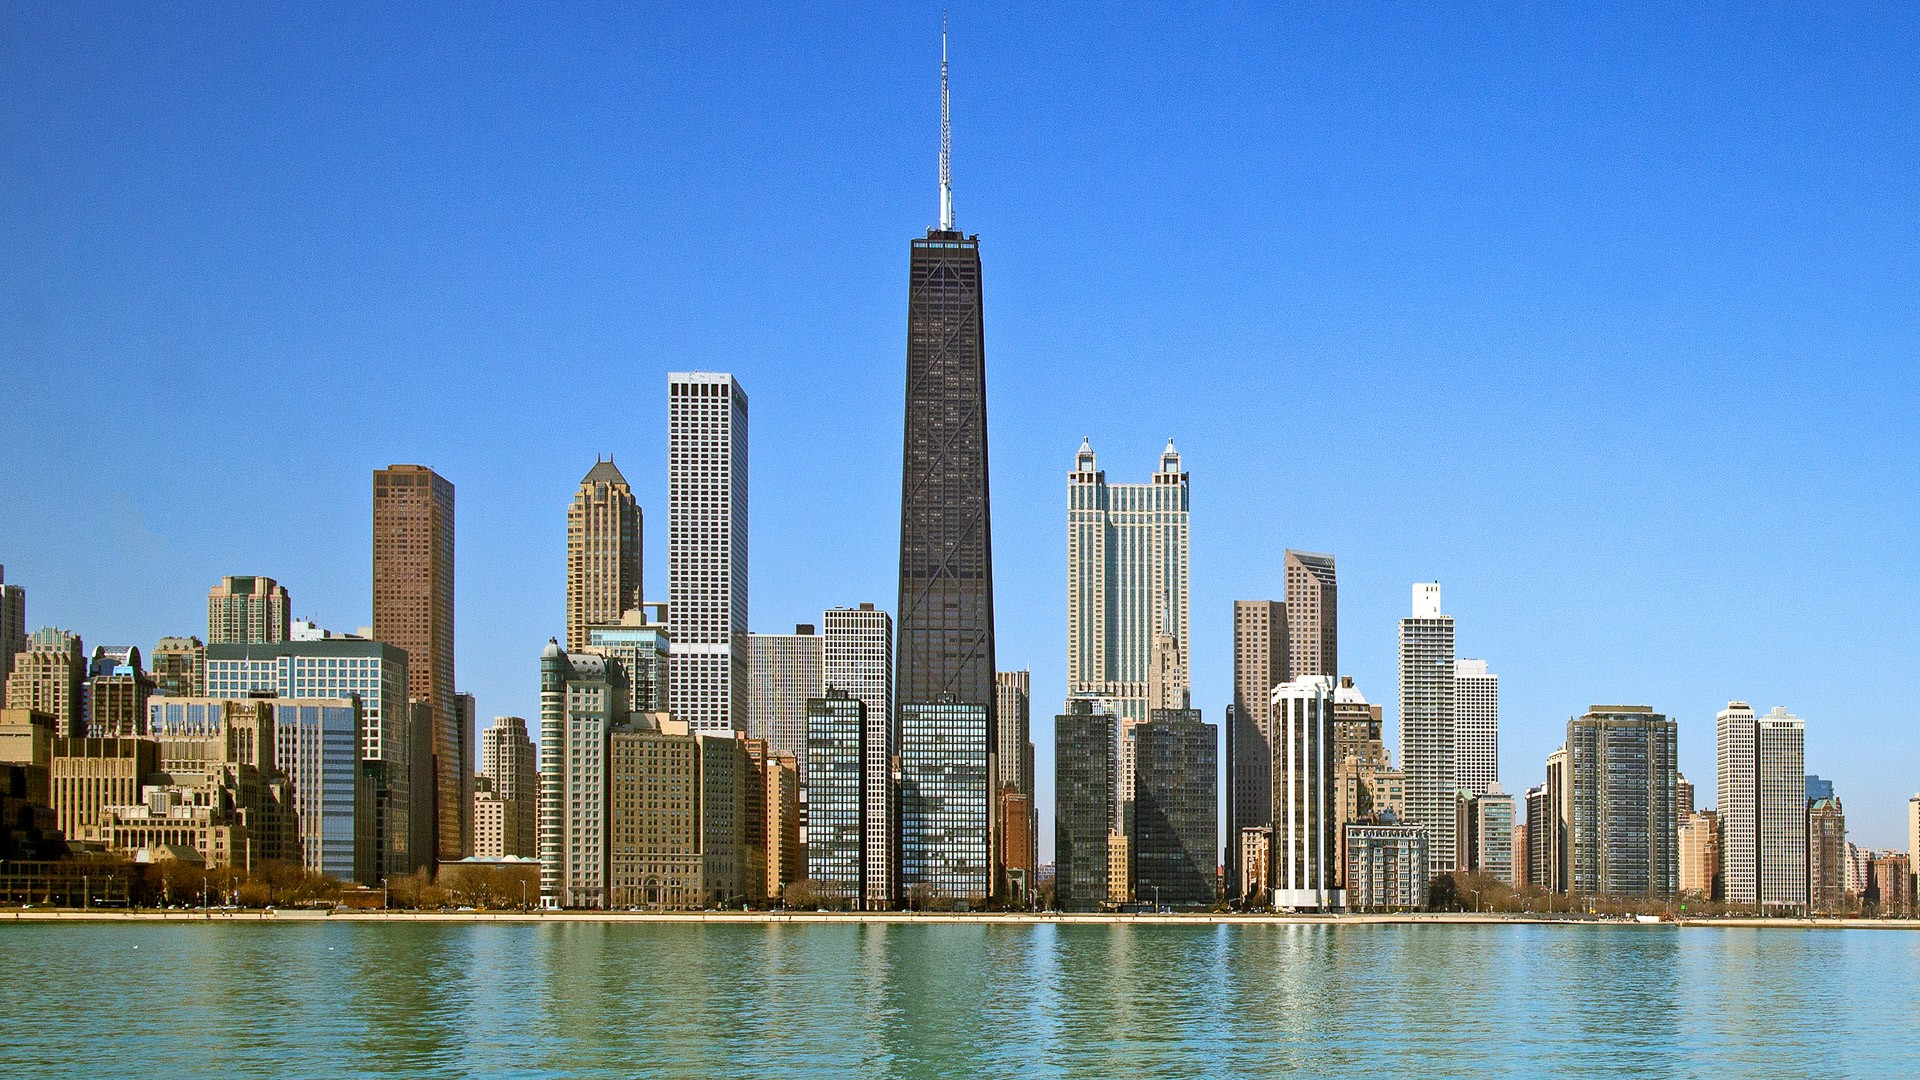 Day view of Chicago with buildings reflection on the water.